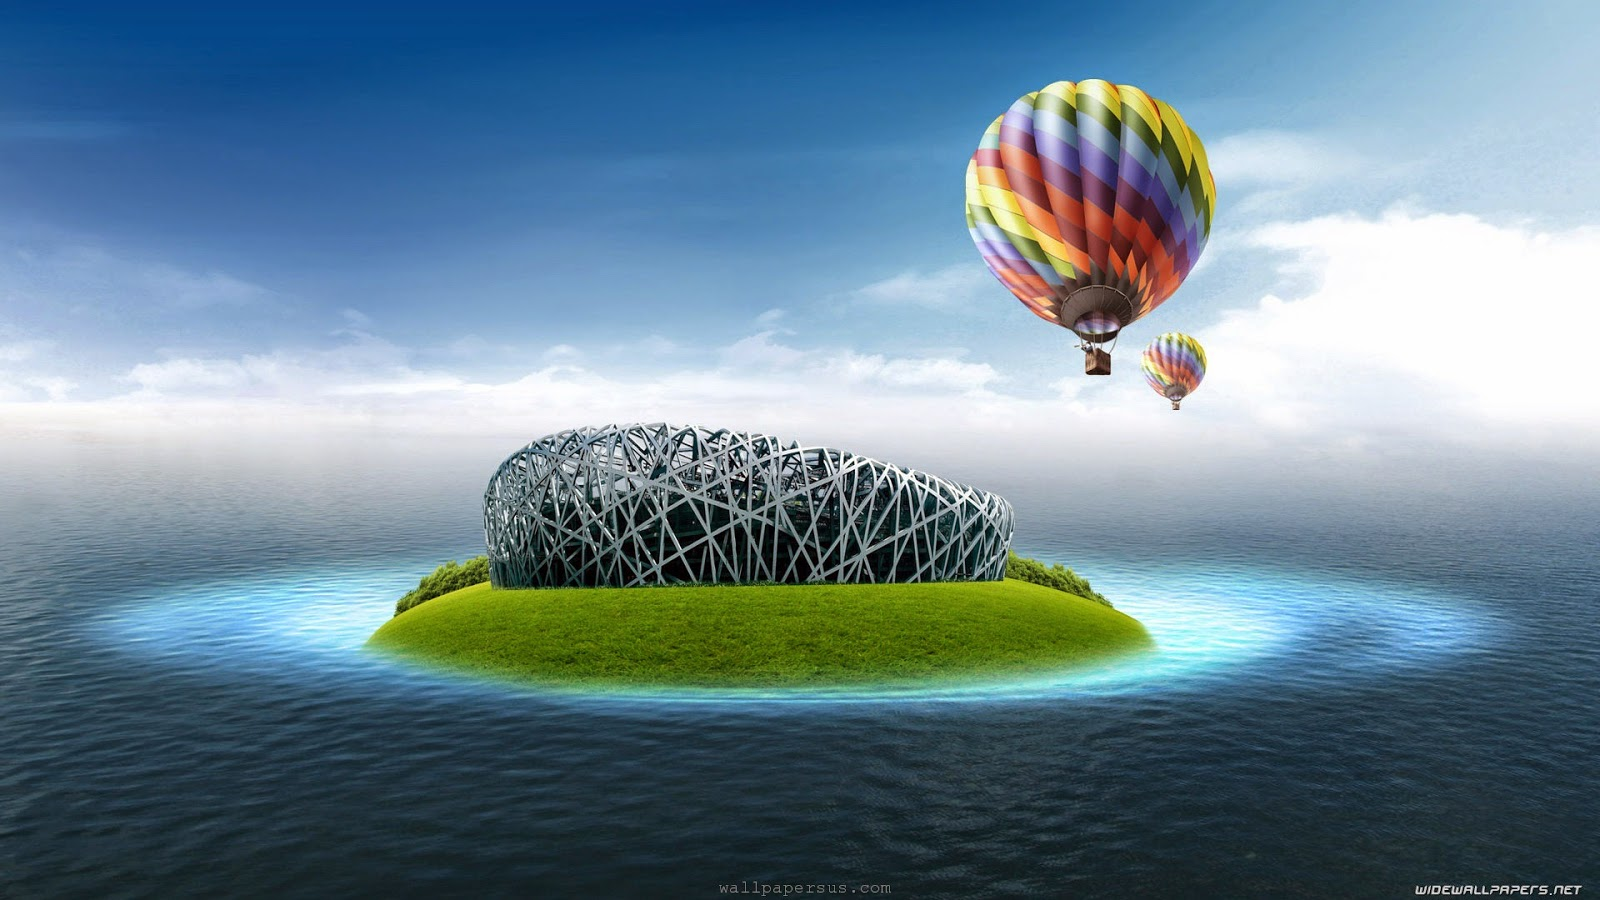 All About Insurance Sea Islands Digital Art Hot Air Balloons Wallpapers